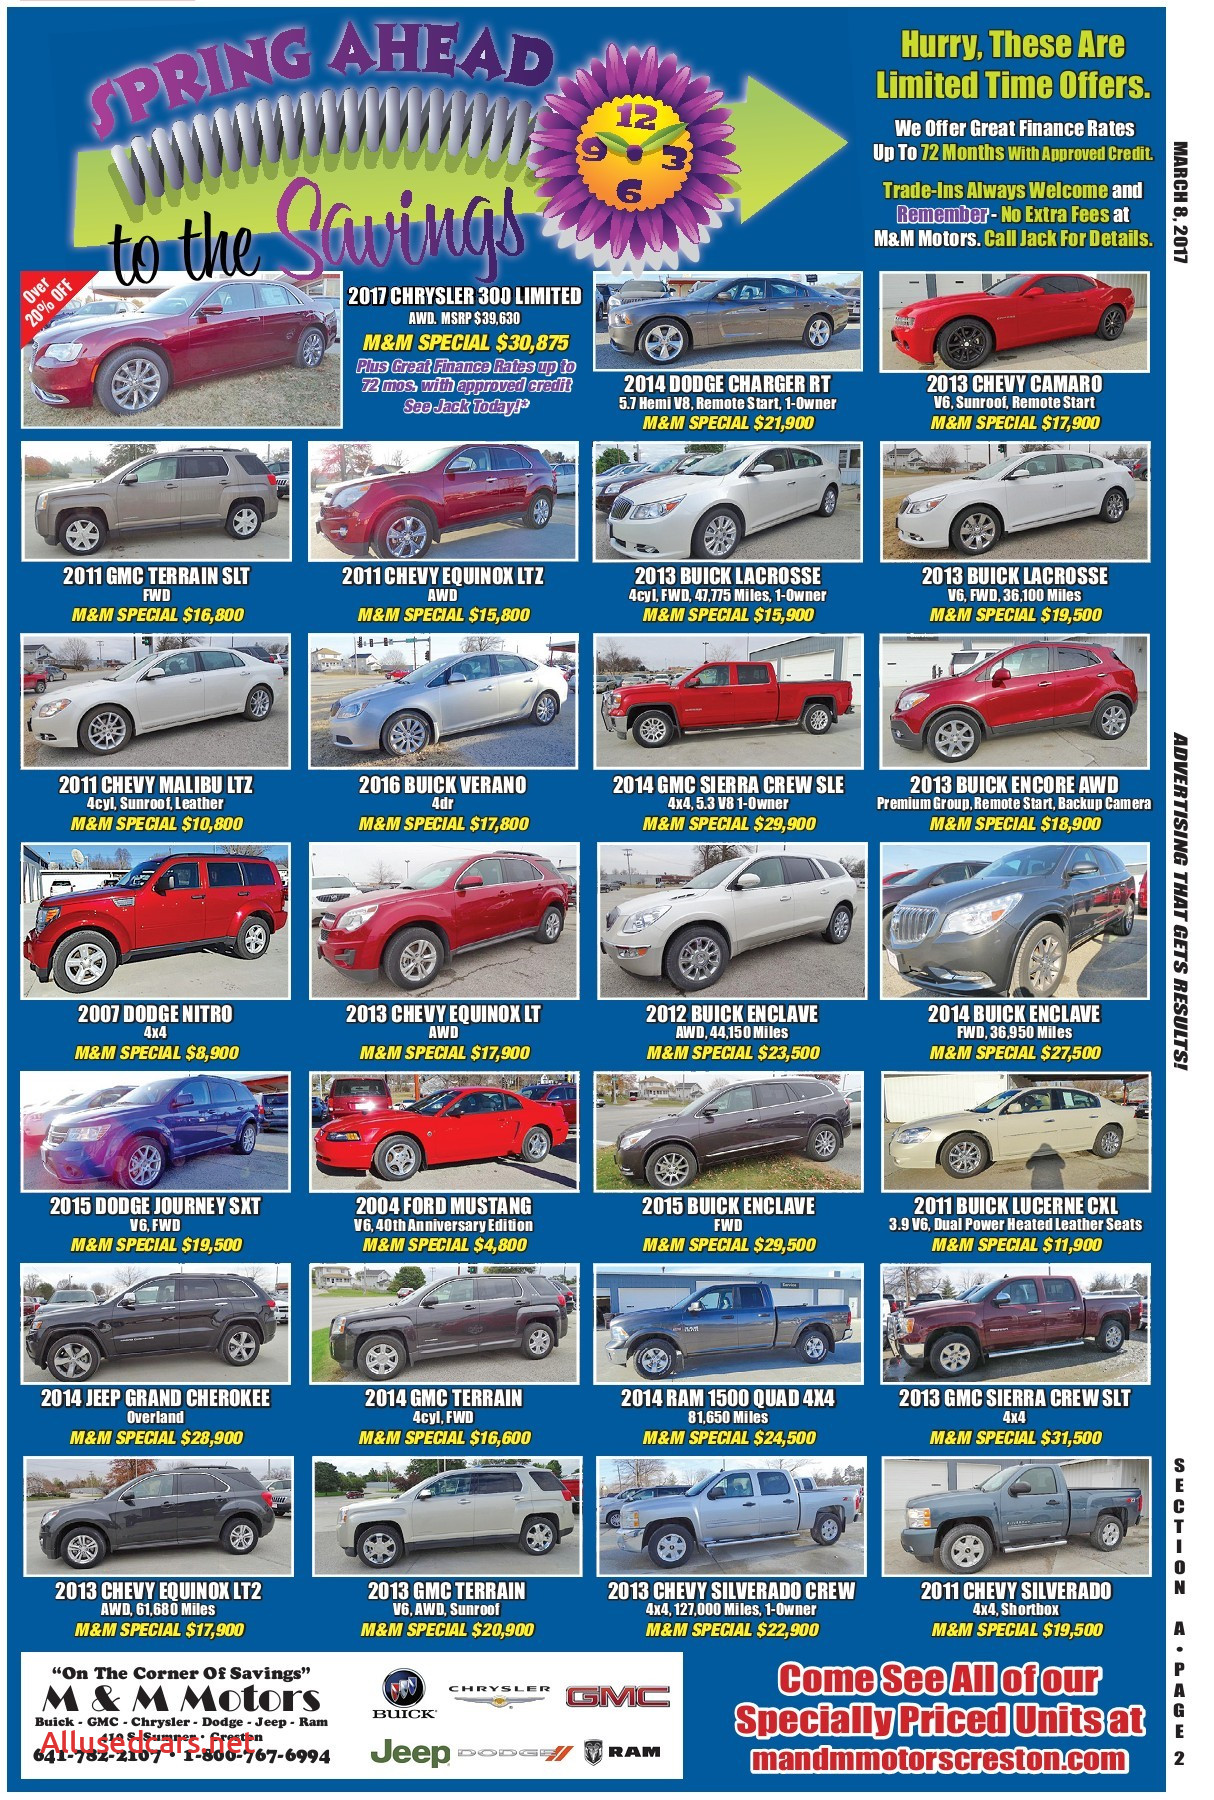 2017 Buick Enclave Elegant 1882 March 8 2017 Exchange Newspaper Eedition Pages 1 44